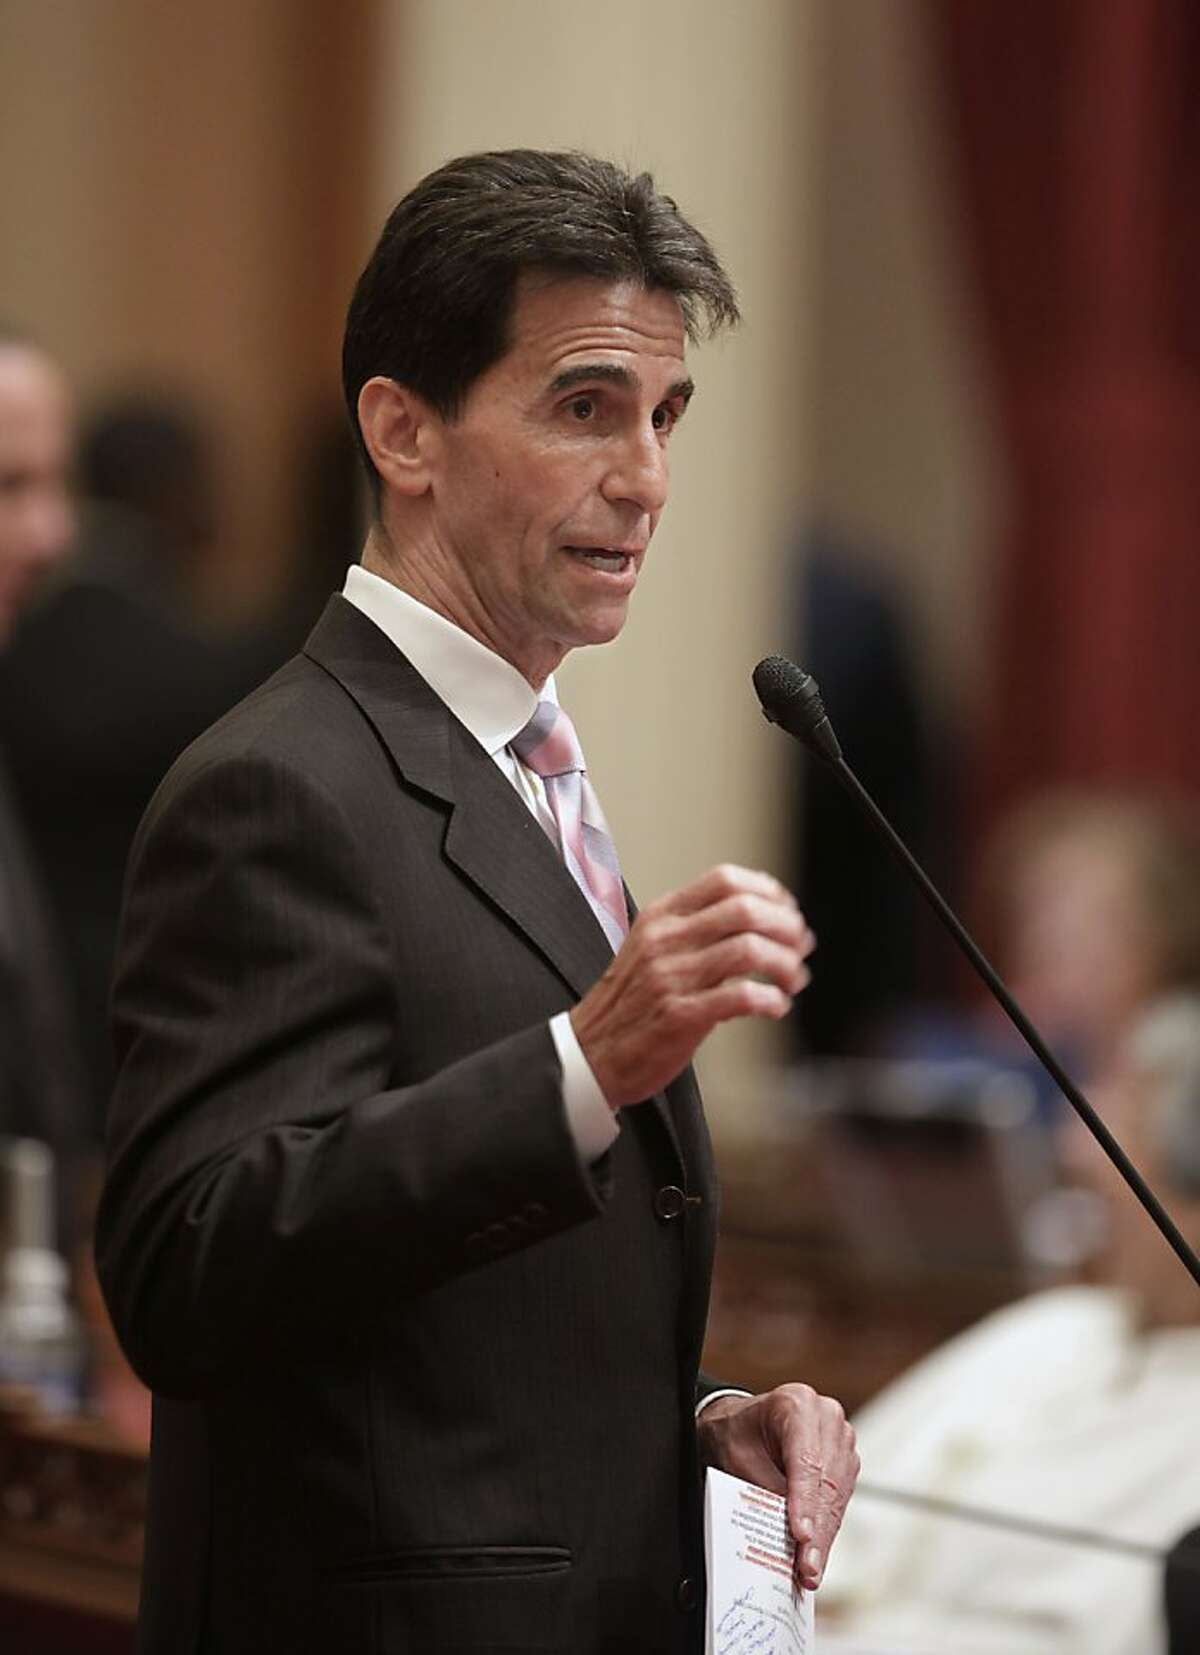 In this photo taken Tuesday, June 28 2011, State Sen. Mark Leno, D-San Francisco is seen at the Capitol in Sacramento, Calif., Leno's measure requiring public schools to teach the historical contributions of gay Americans, was approved by the Assembly on 49-25 on a party line vote, Tuesday July 5, 2011. If signed into law by Gov. Jerry Brown, California would be the first state to require public schools to include the contributions of gays and lesbians in their social studies curriculum.(AP Photo/Rich Pedroncelli) Ran on: 07-10-2011 State Sen. Mark Leno, D-S.F., is SB48s author. Ran on: 07-10-2011 State Sen. Mark Leno, D-S.F., is SB48s author. Ran on: 07-23-2011 State Sen. Mark Leno, D-San Francisco, author of the medical parole law, says the state board is holding up inmate hearings.